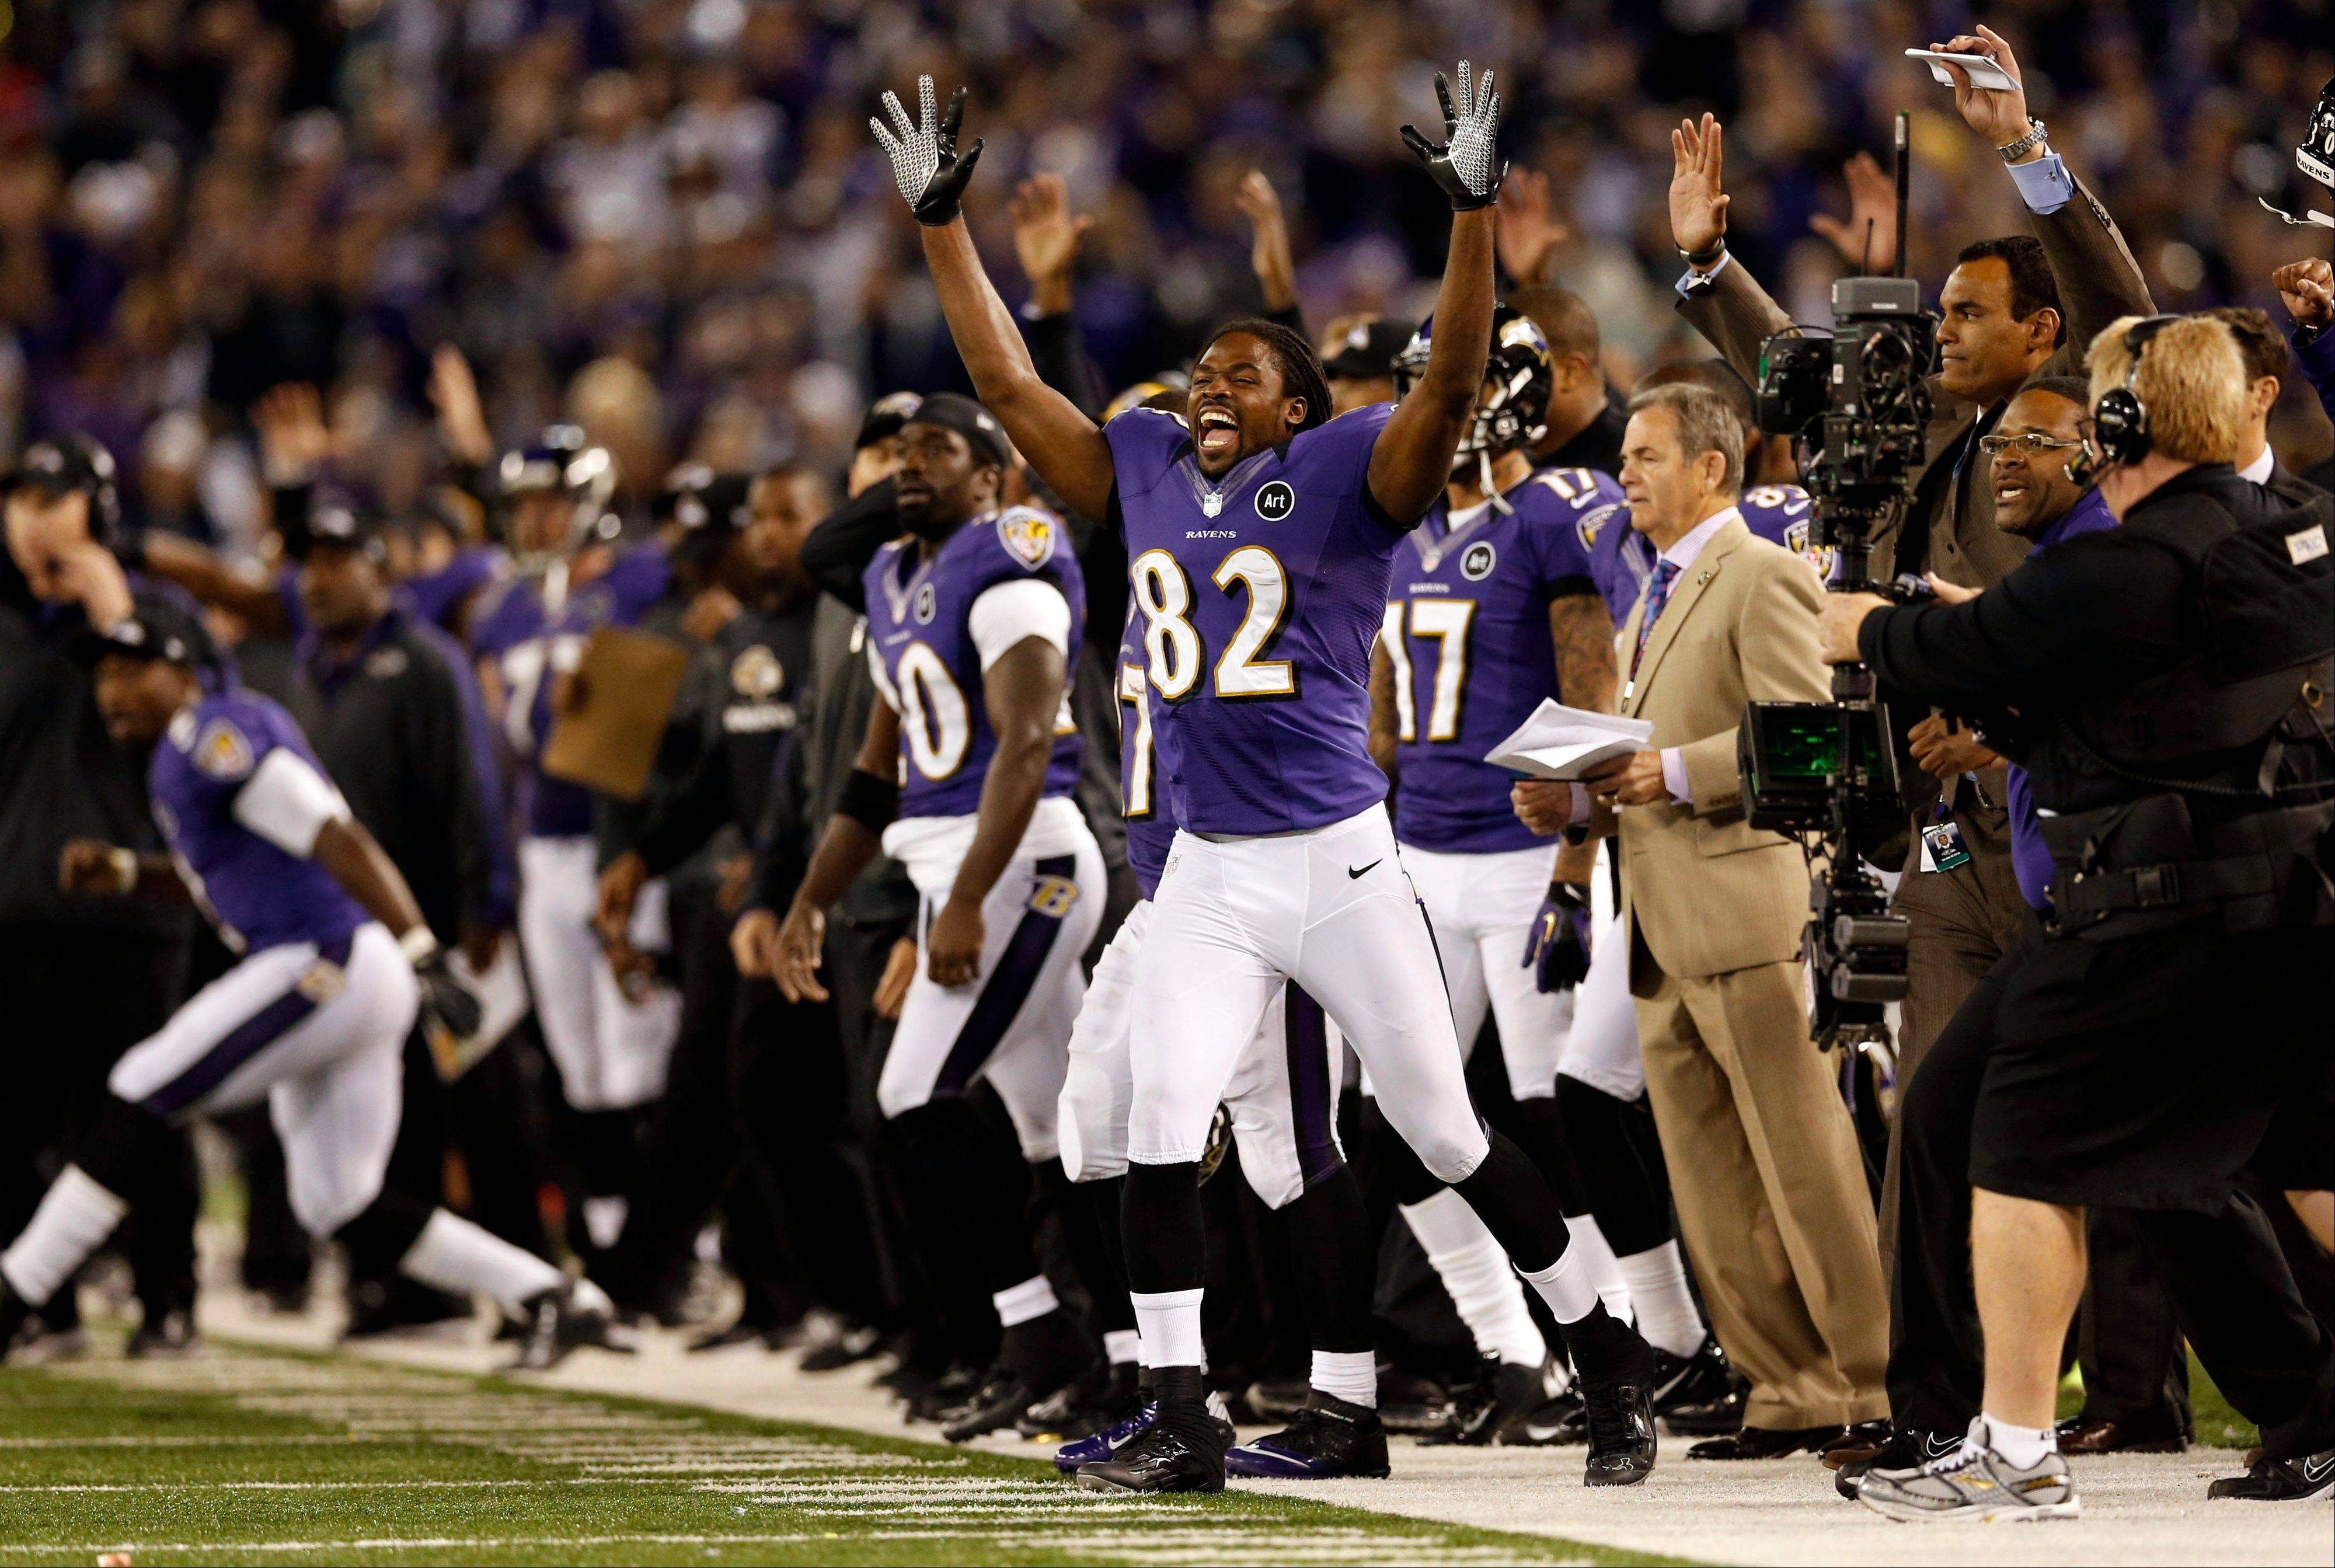 Ravens wide receiver Torrey Smith celebrates after kicker Justin Tucker's game-winning field goal Sunday night against the New England Patriots in Baltimore.